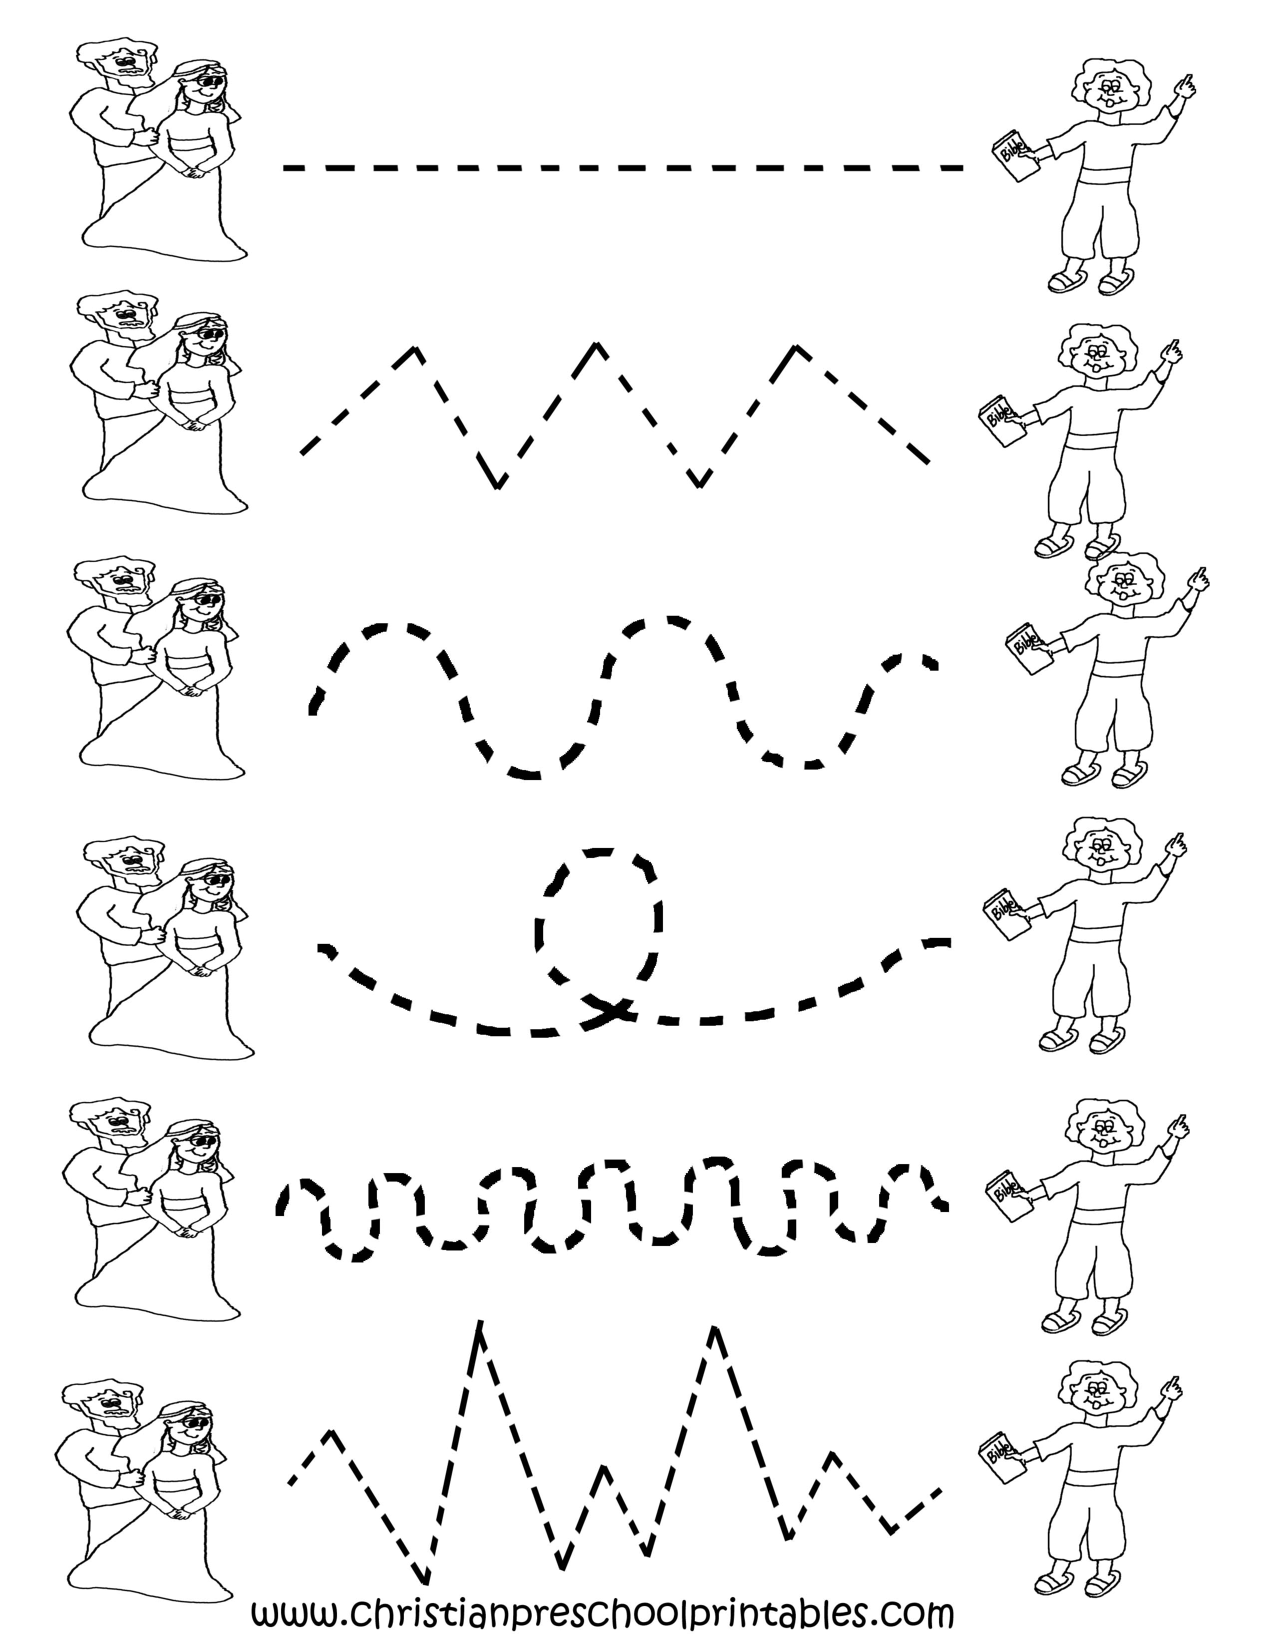 Printables Kindergarten Tracing Worksheets printable kindergarten worksheets preschool tracing cakepins com